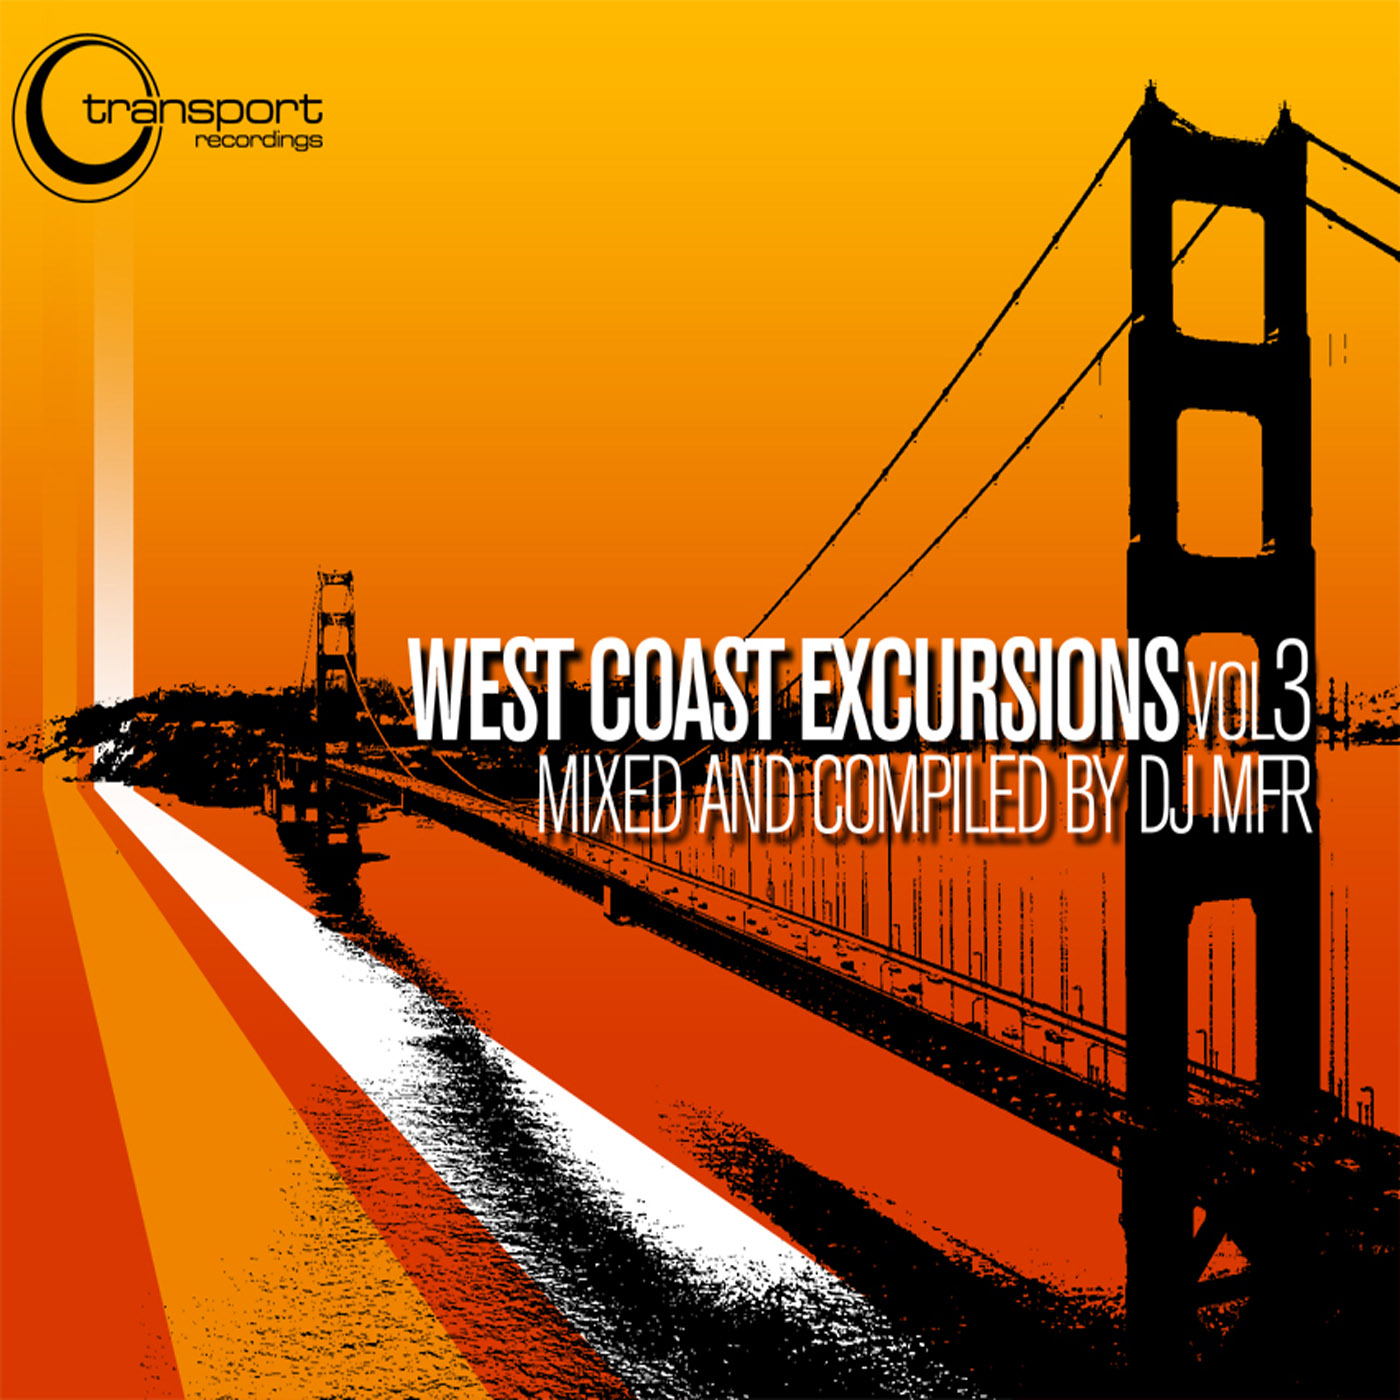 West Coast Excursion 3